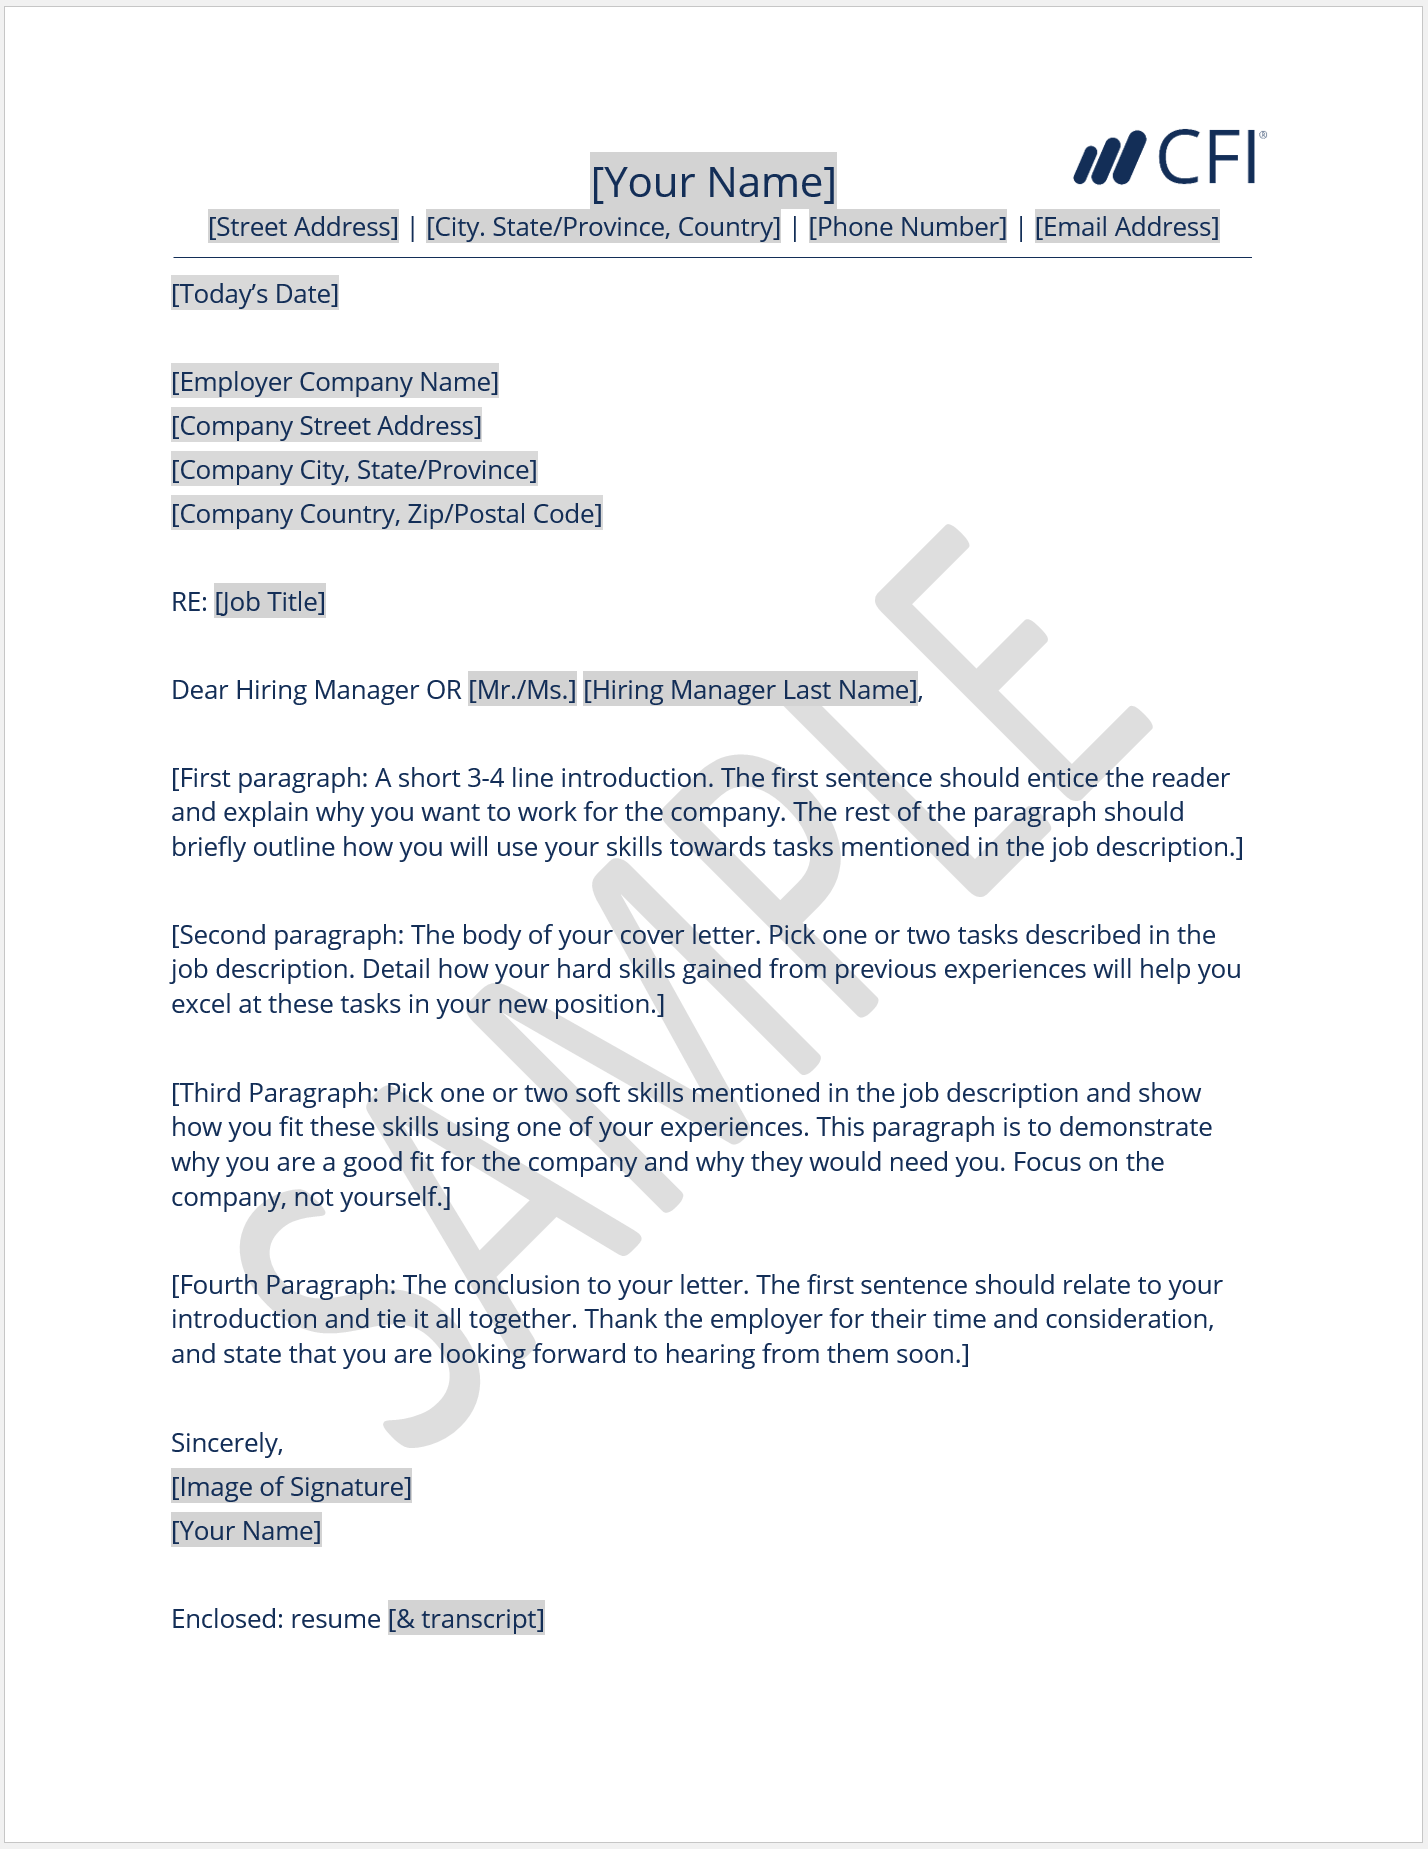 Sample Job Application Cover Letters Cover Letter How To Write A Cover Letter Template And Examples